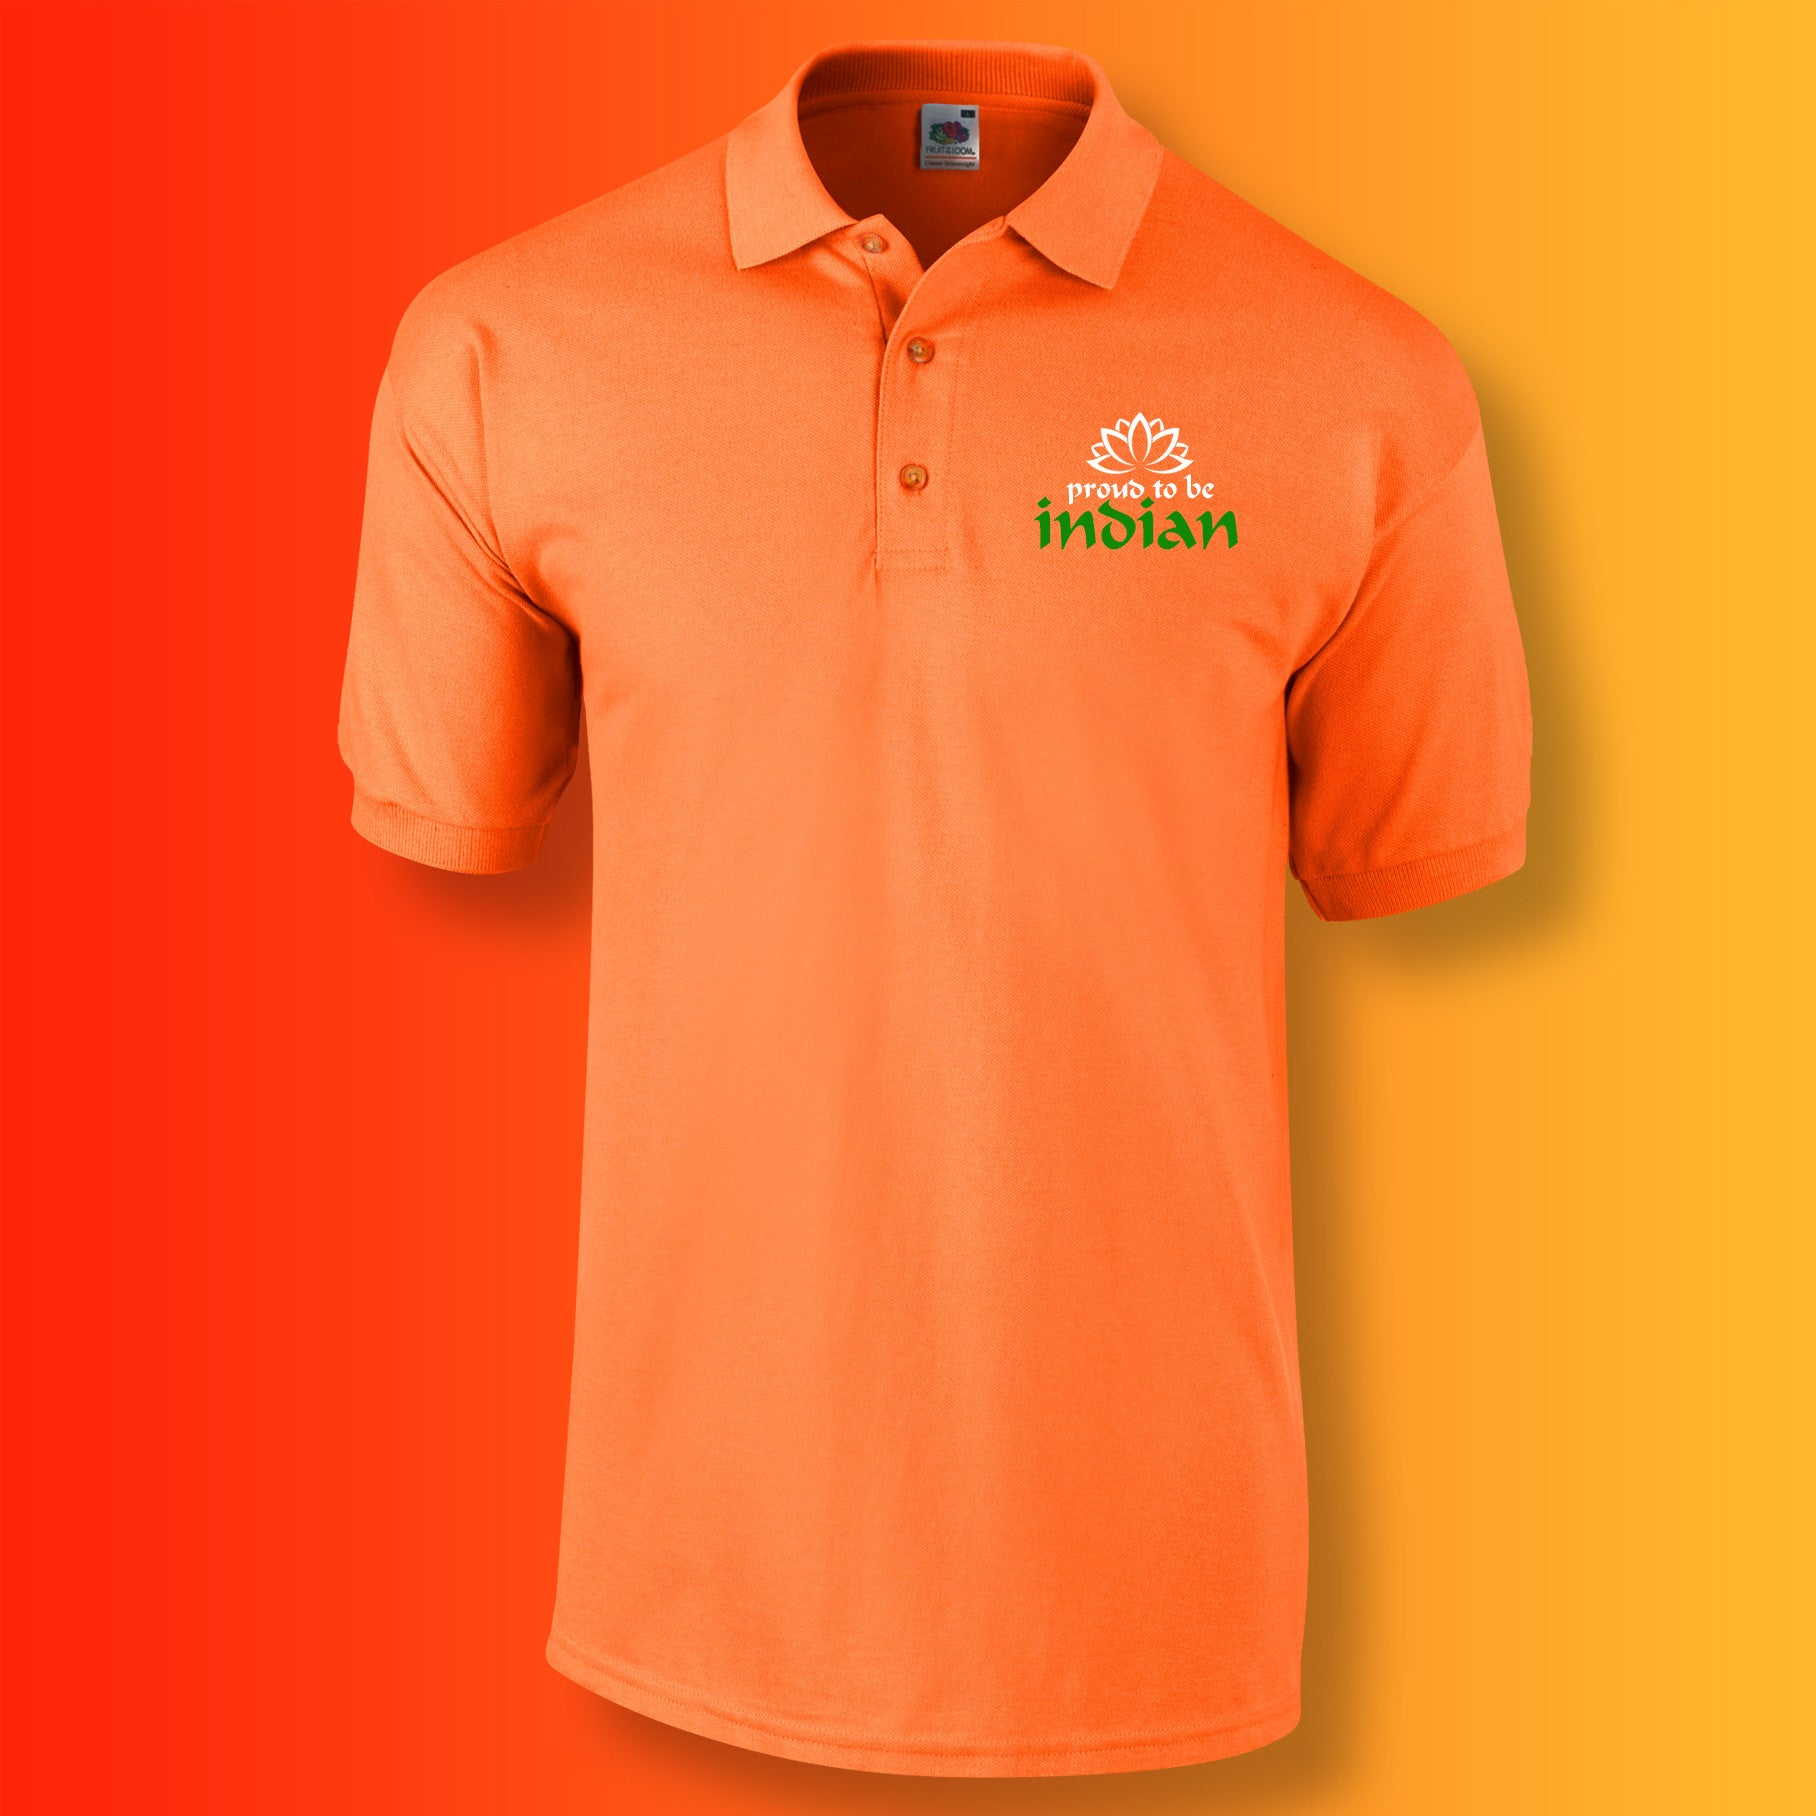 d8ea5baa0 Proud to Be Indian Polo Shirt Orange. All Images and Content Copyright ©  Sloganite.com